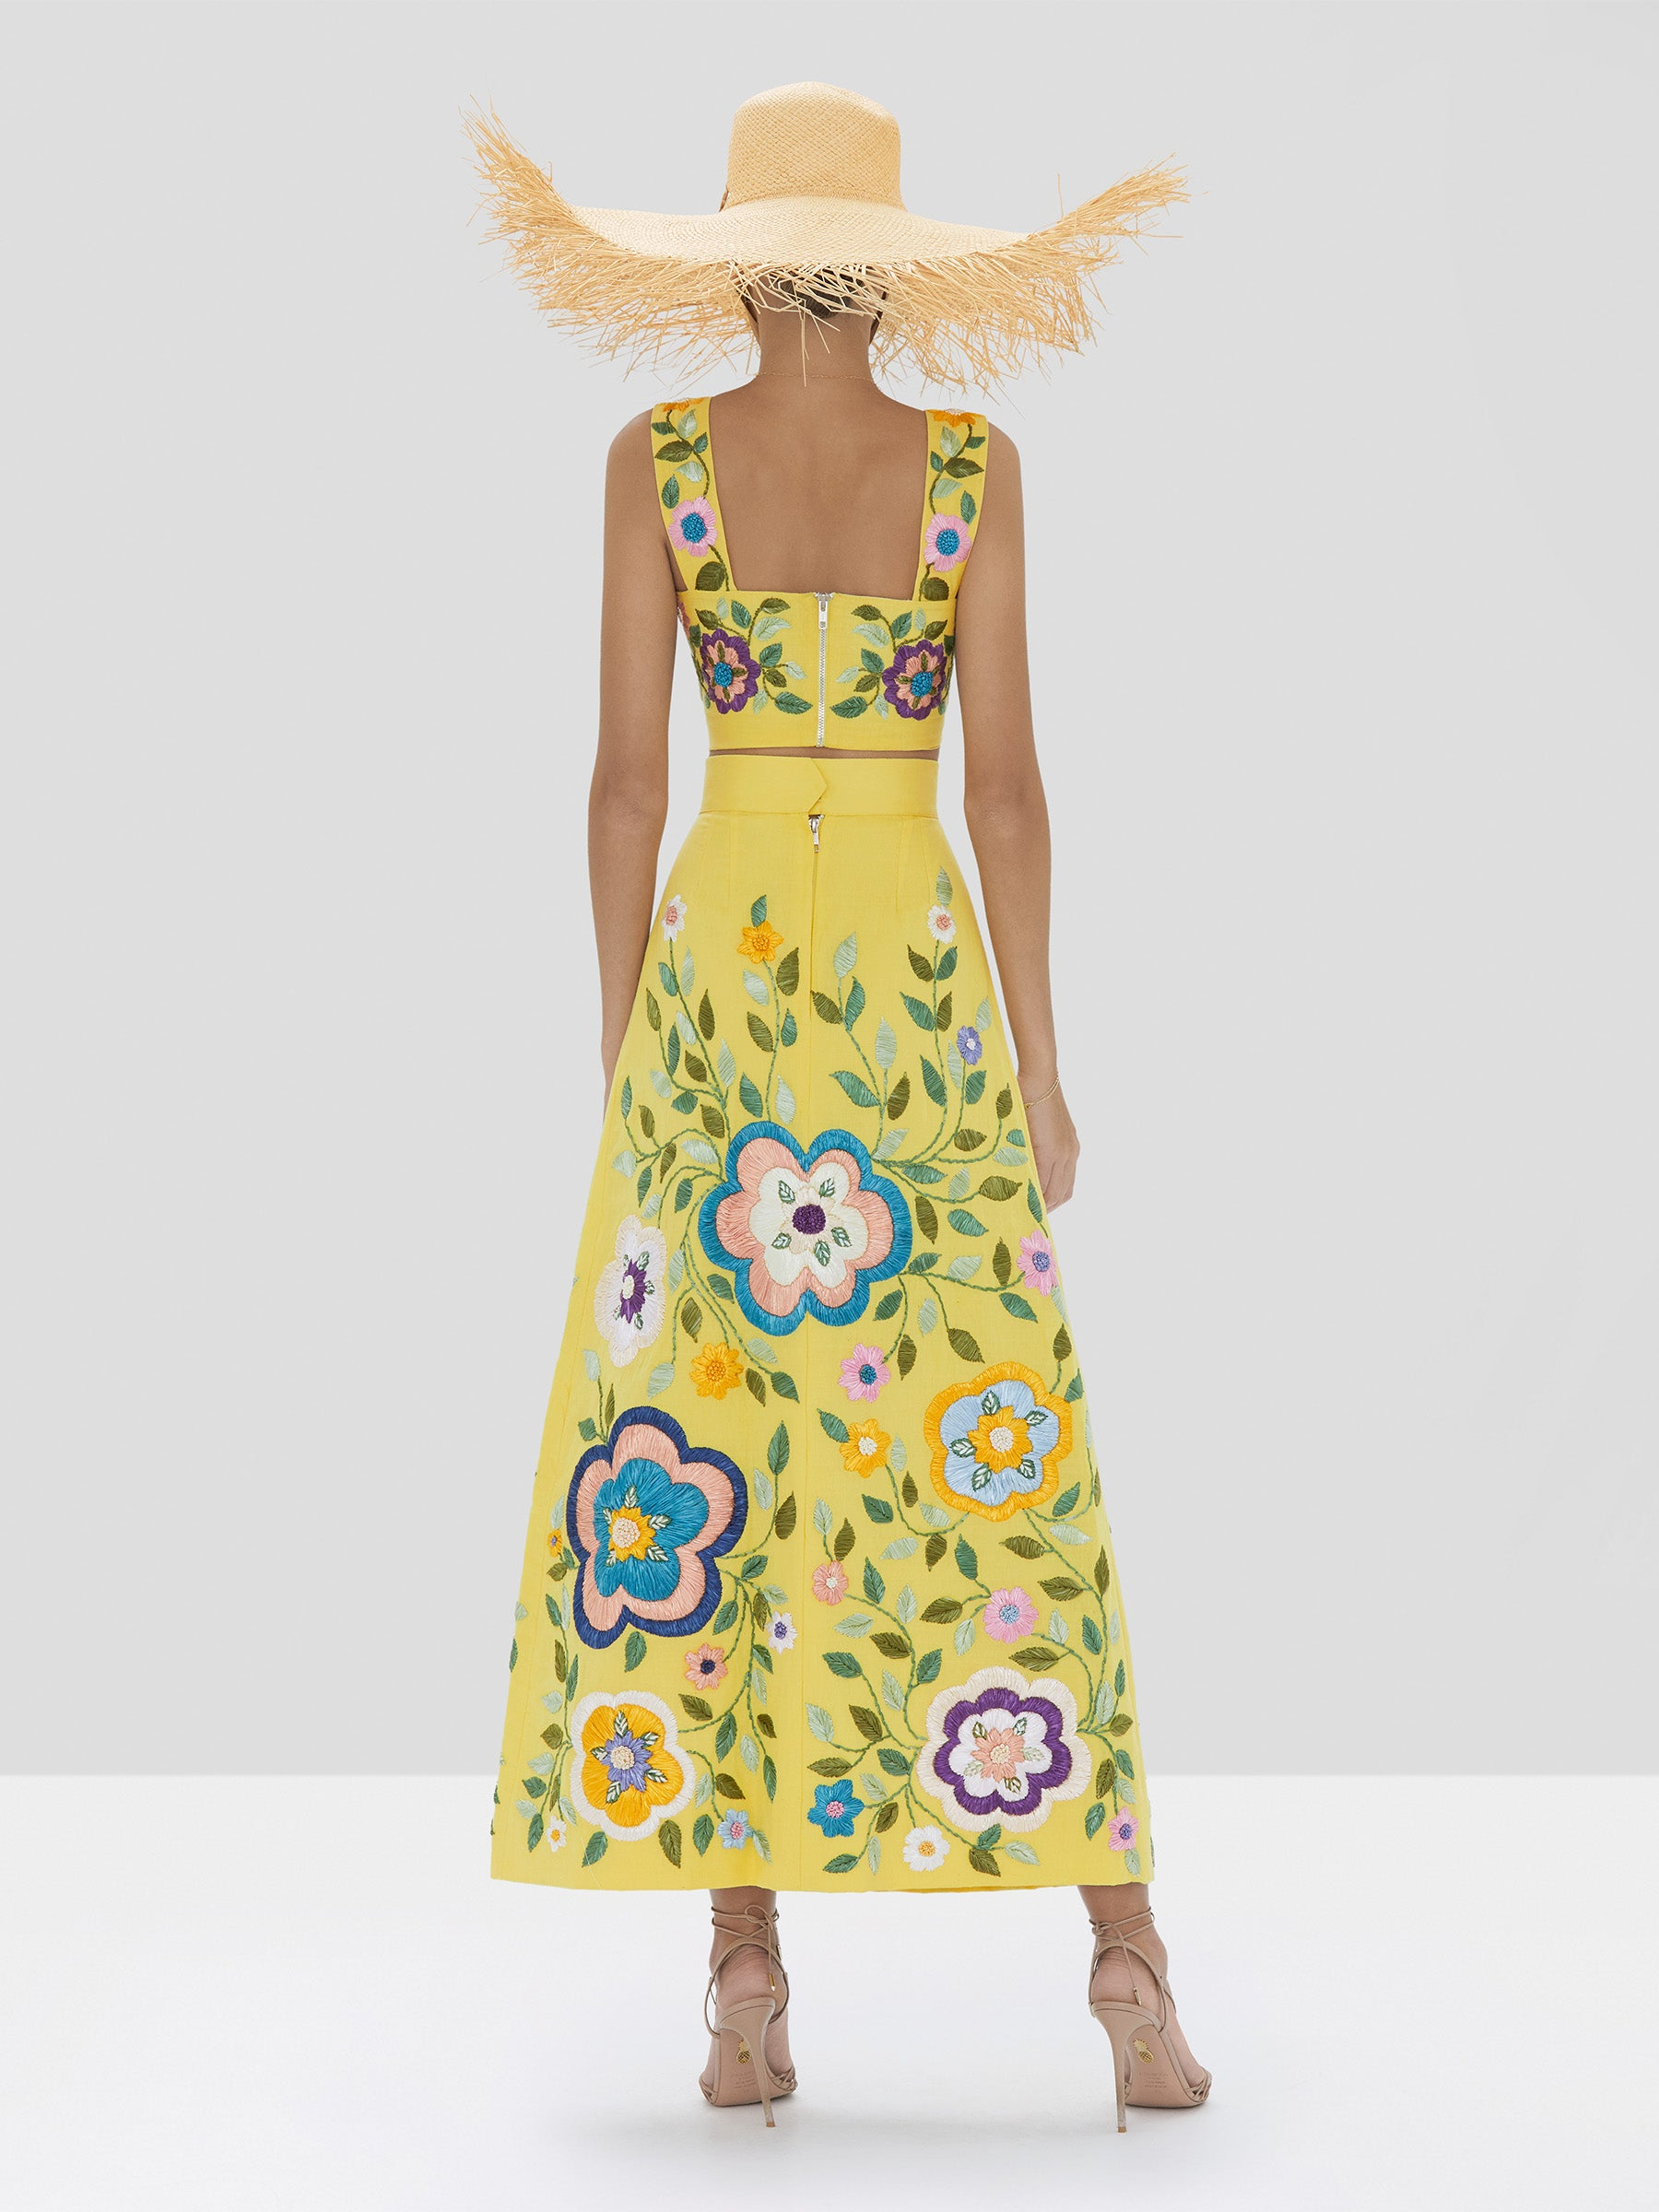 Alexis Bekki Crop Top and Ophelit Skirt in Blooming Floral from Spring Summer 2020 Collection - Rear View